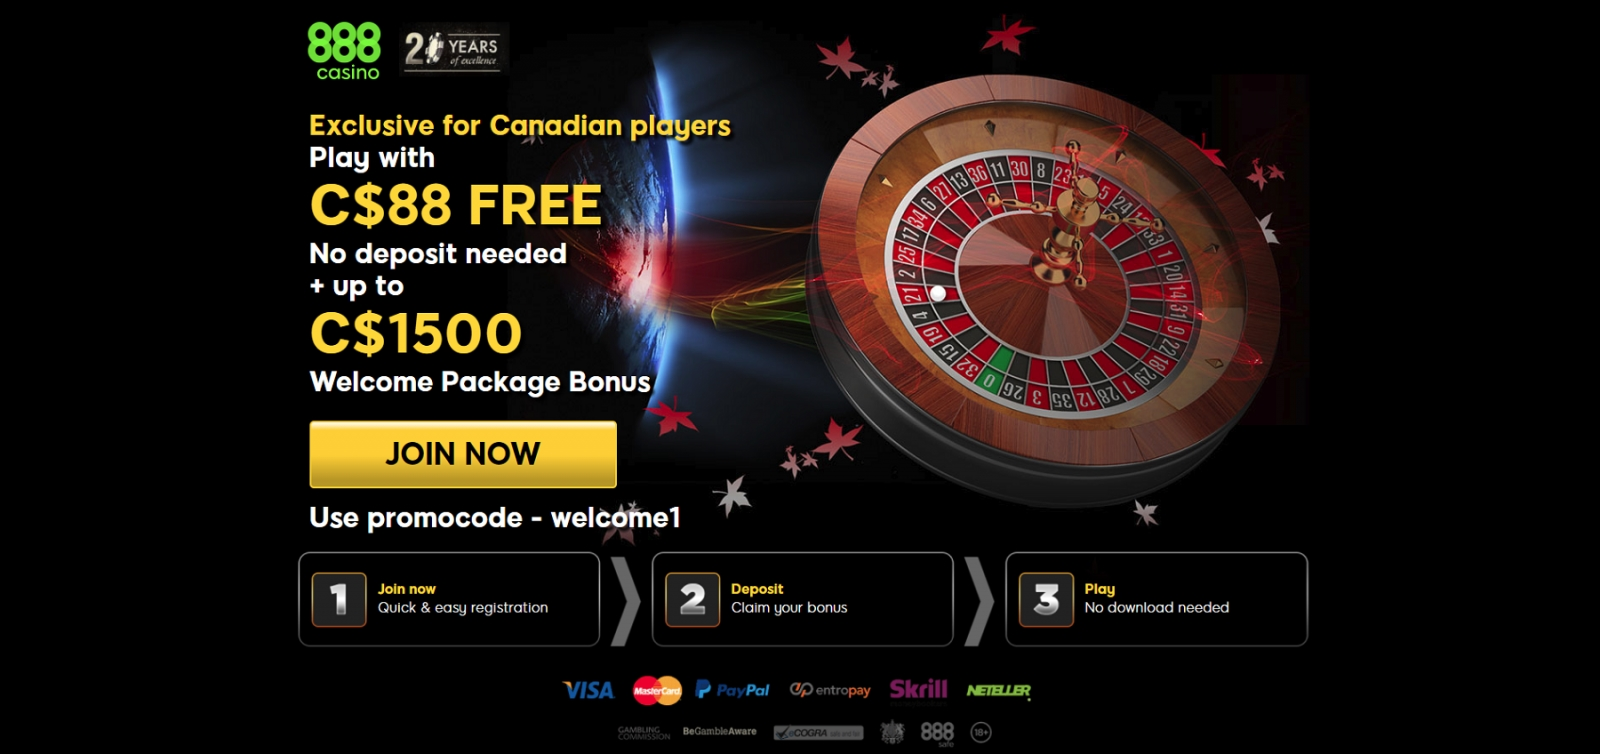 685% casino match bonus at Slots Heaven